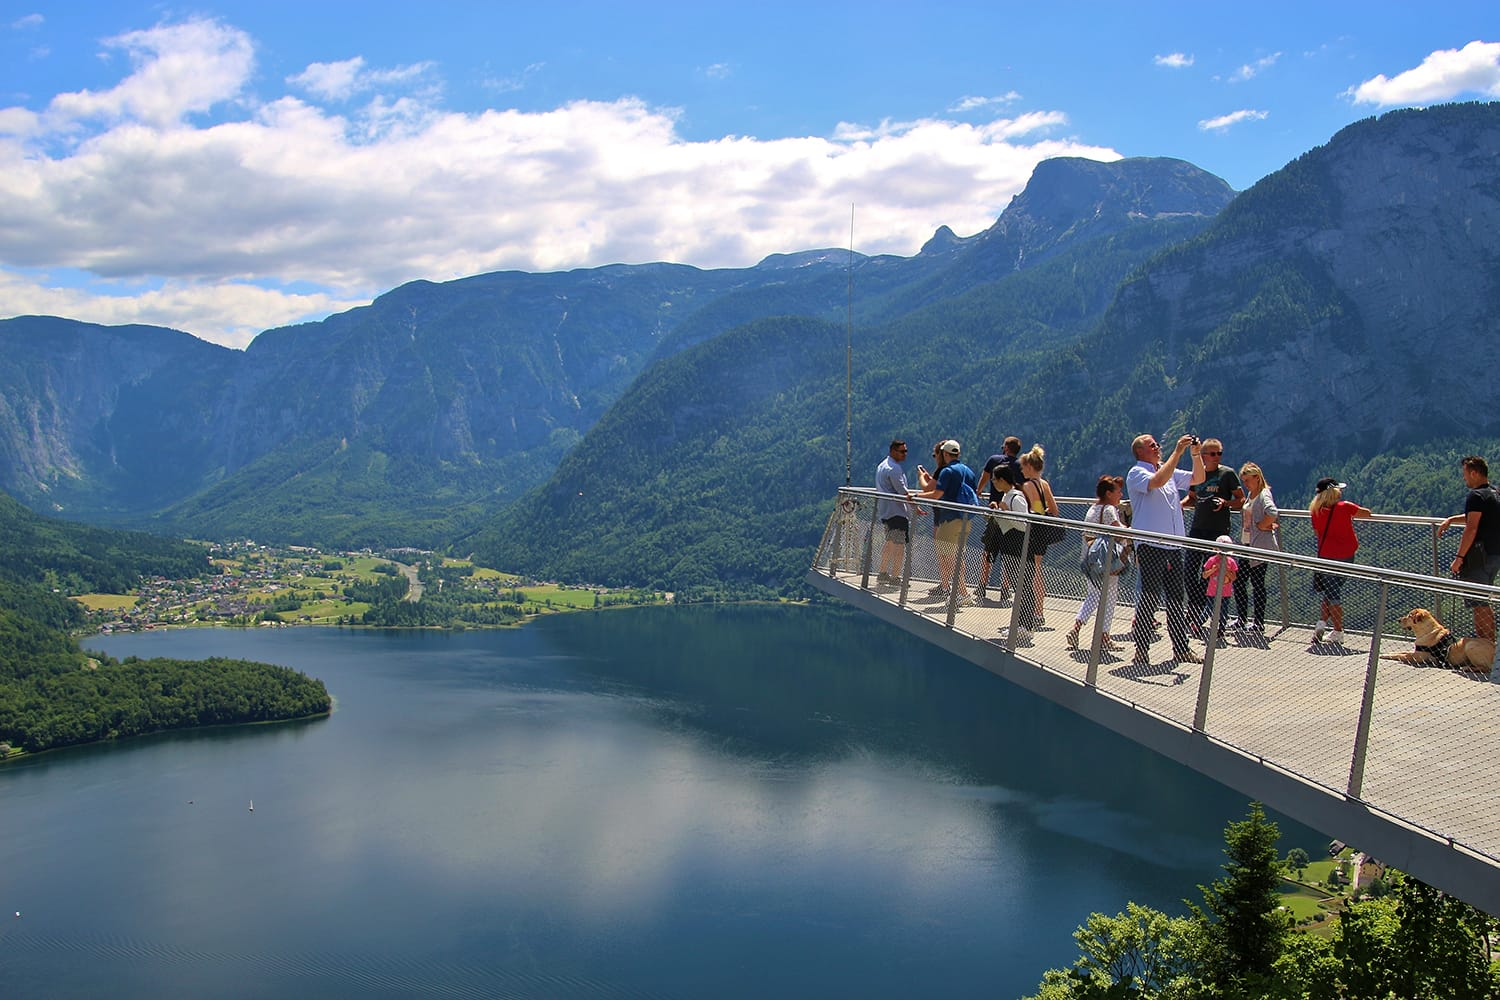 The World Heritage Viewing Platform in Hallstatt with a spectacular view of Lake Hallstatter See and the surrounding mountains Hallstatt, Austria